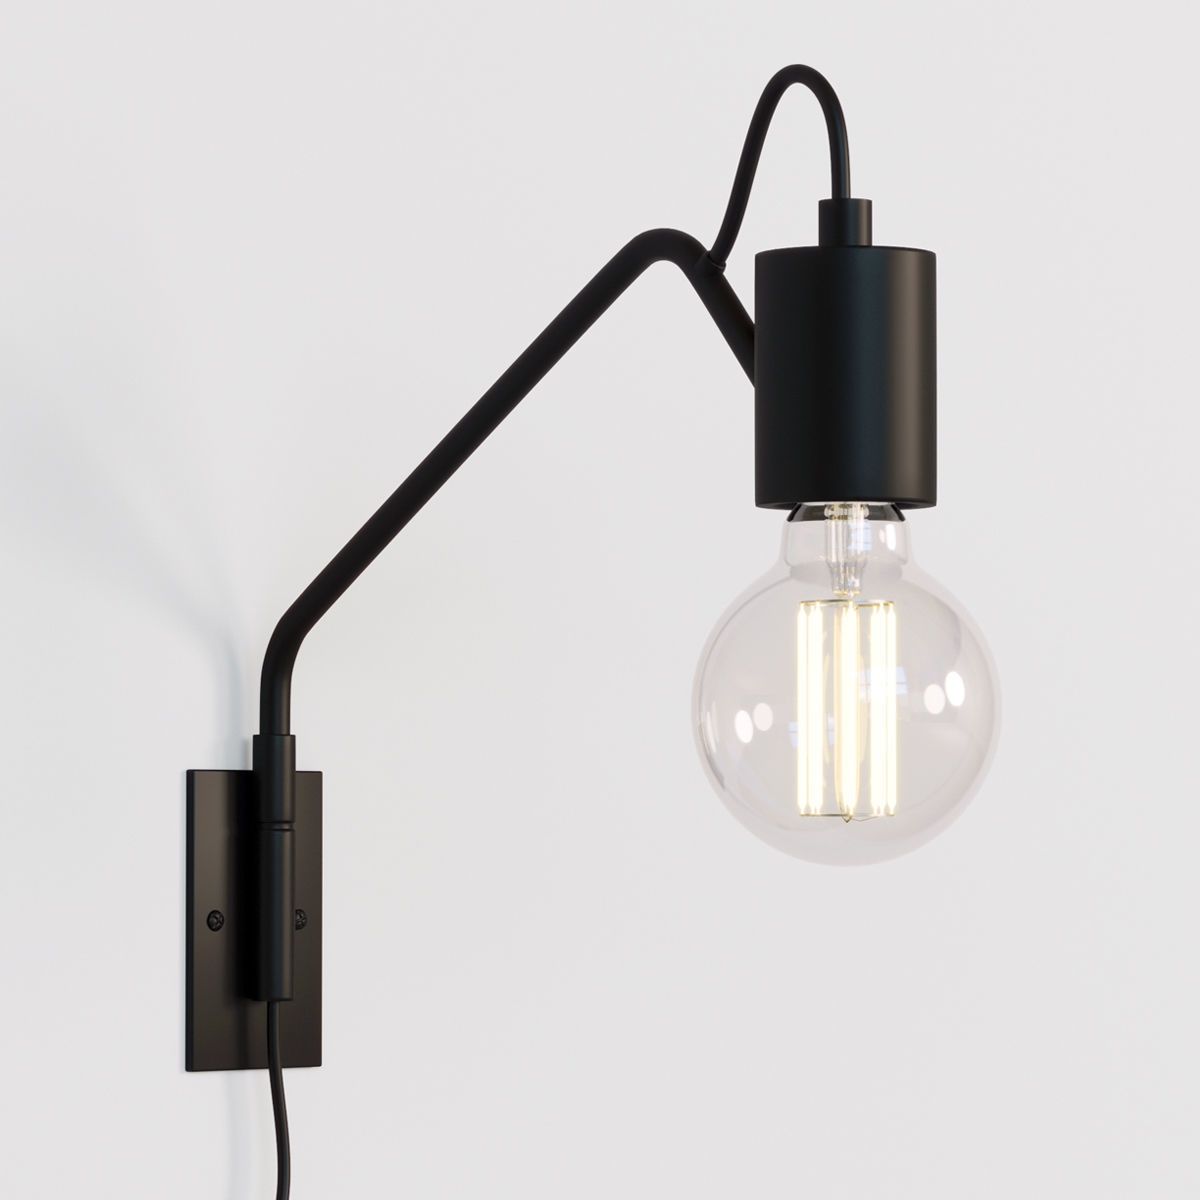 Swing Wall Lamp Swing Arm Wall Lamp Black 3d Model